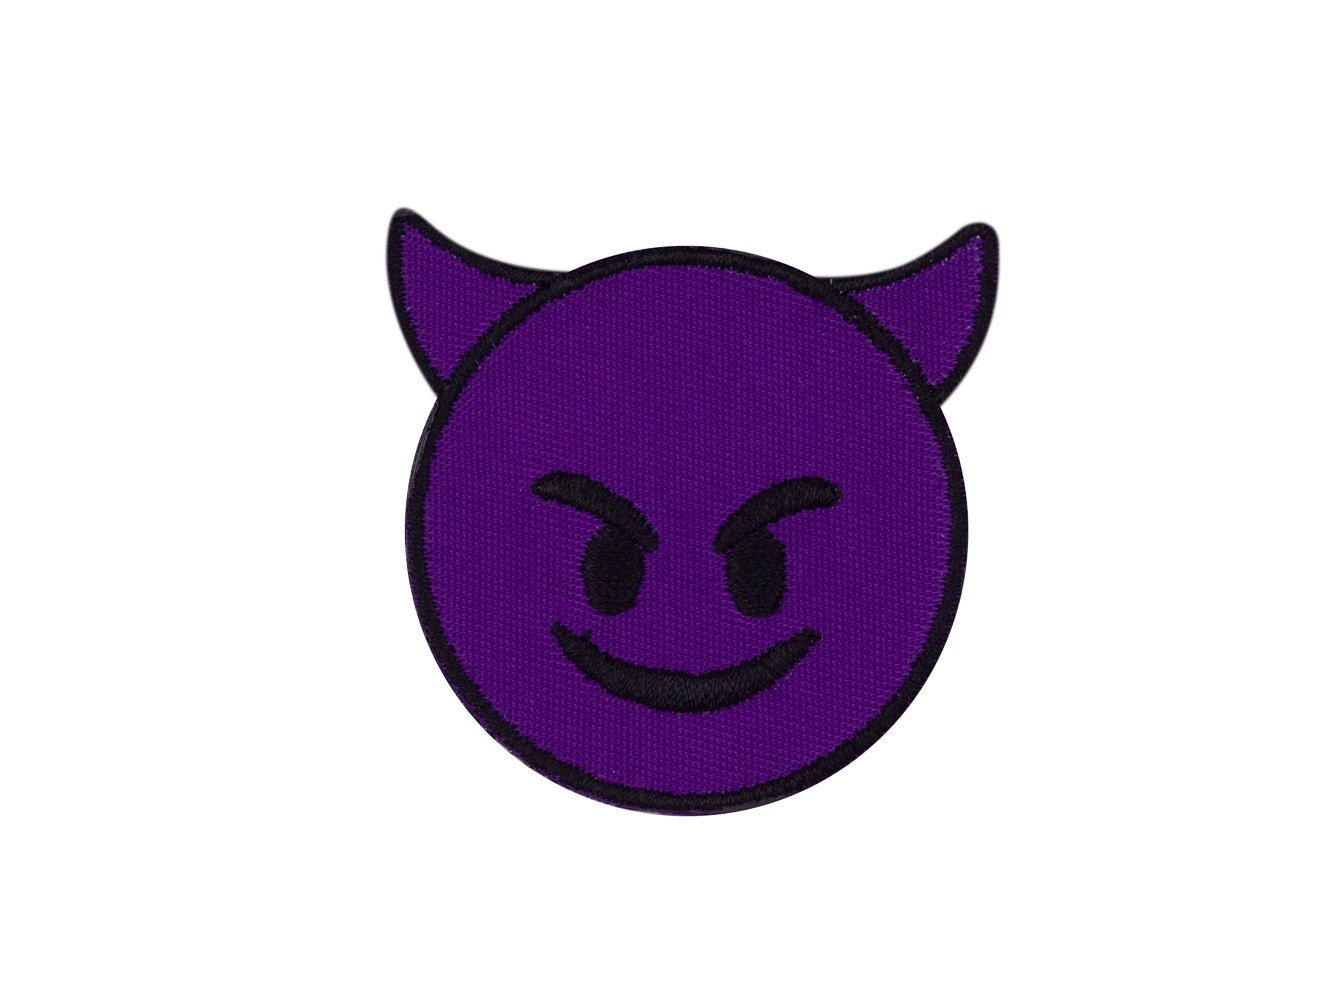 Cuernos De Diablo Png: Smiling Face With Horns Devil Emoji Embroidered Iron On Patch